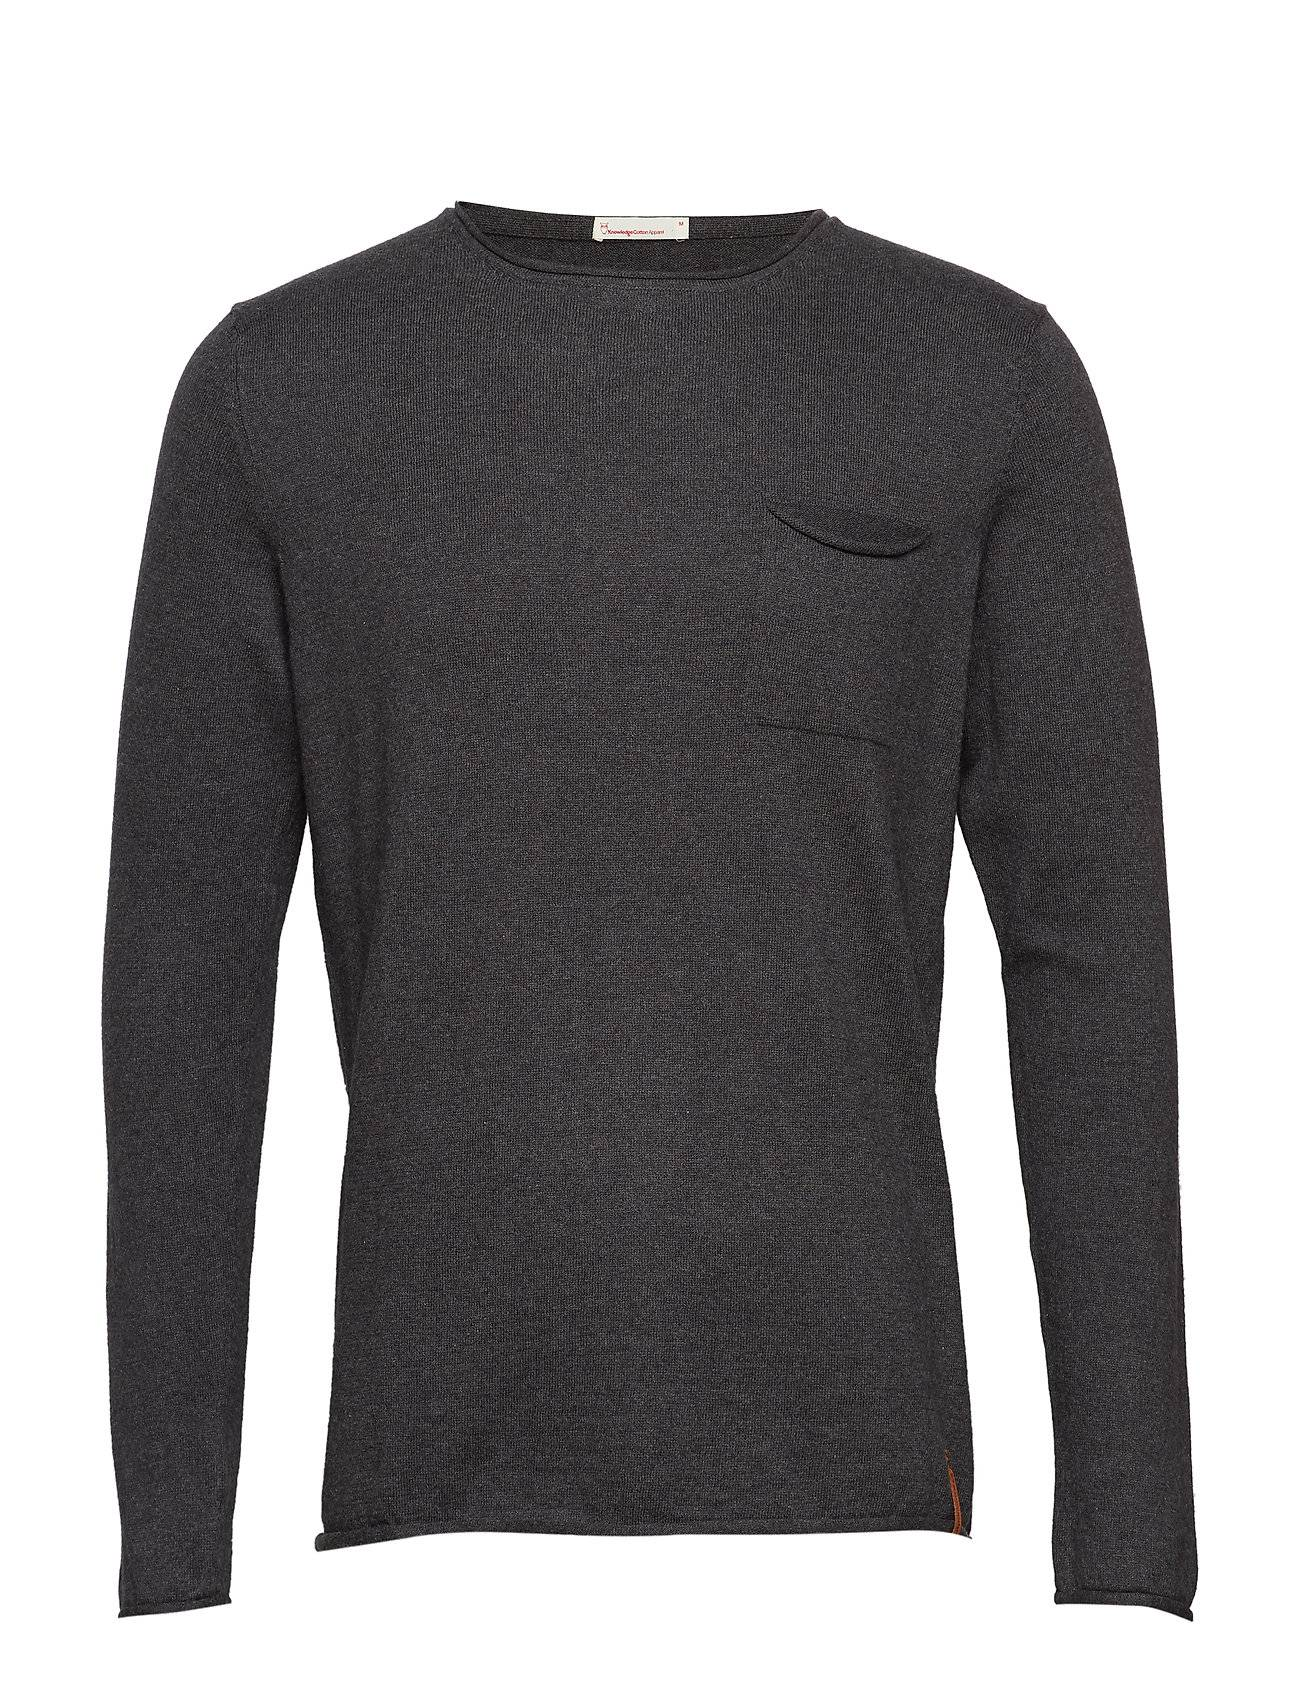 Knowledge Cotton Apparel Fine Single Knit With Roll Edges -